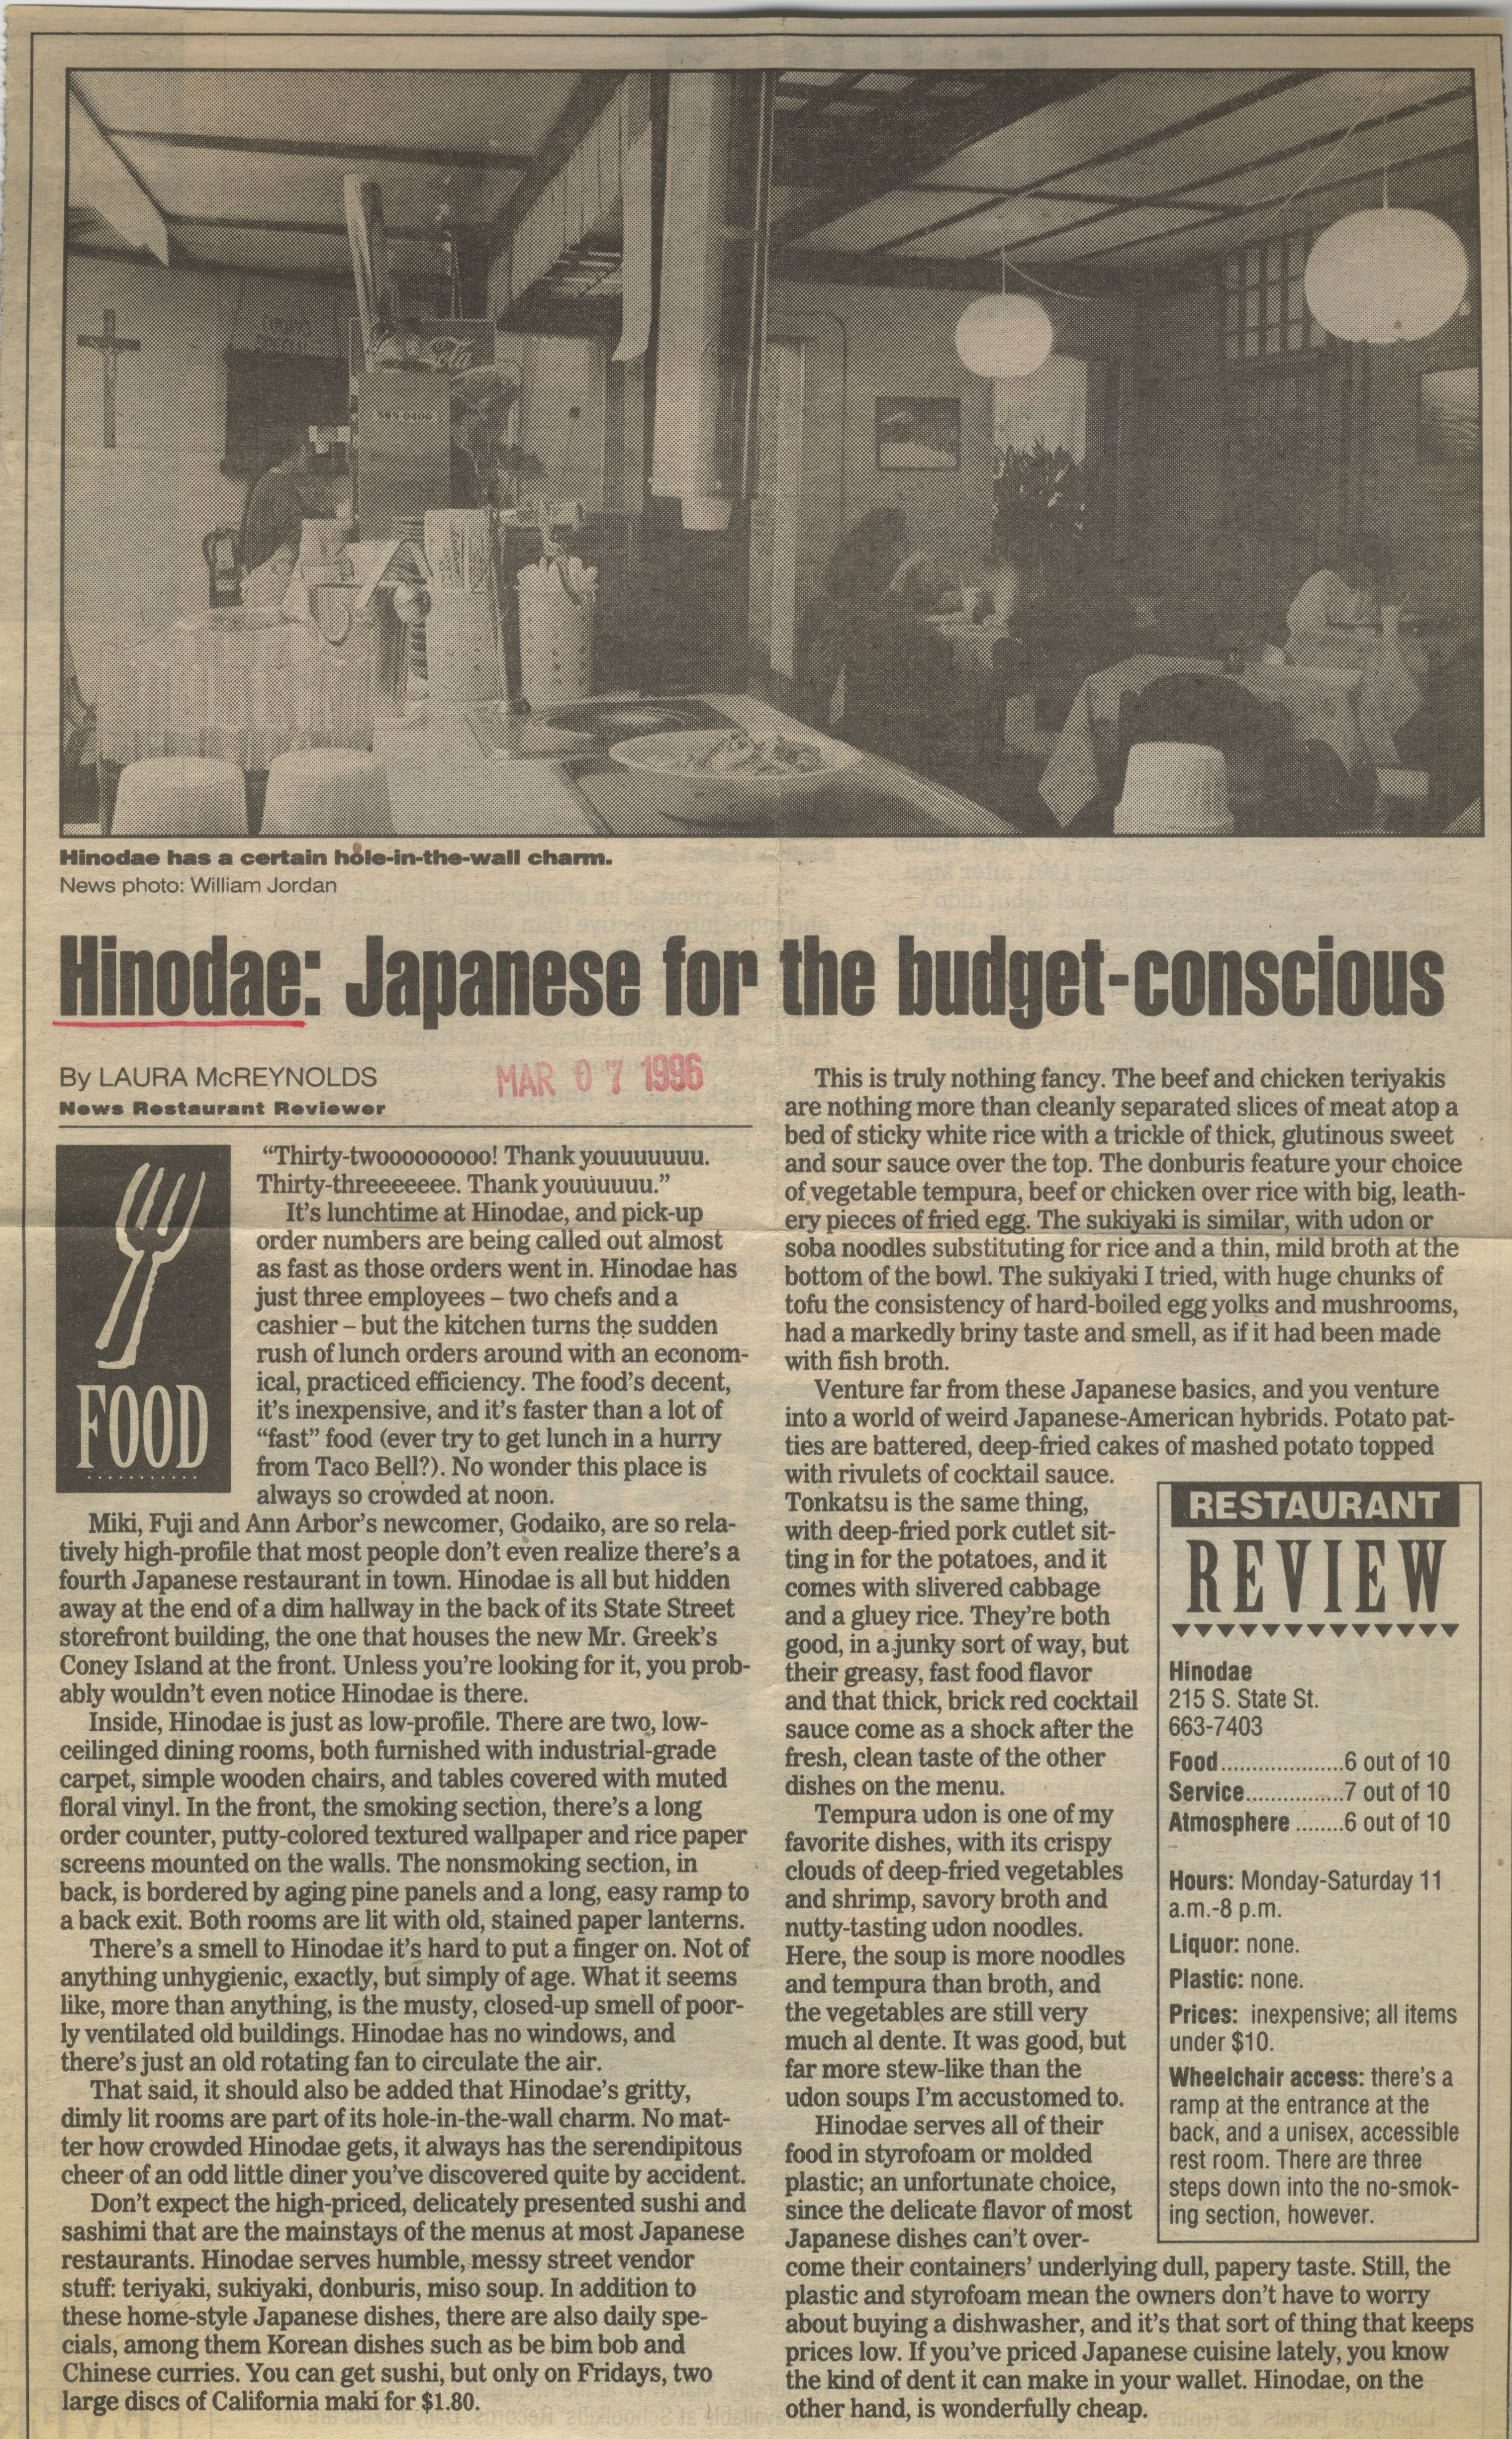 Hinodae: Japanese for the budget-conscious image